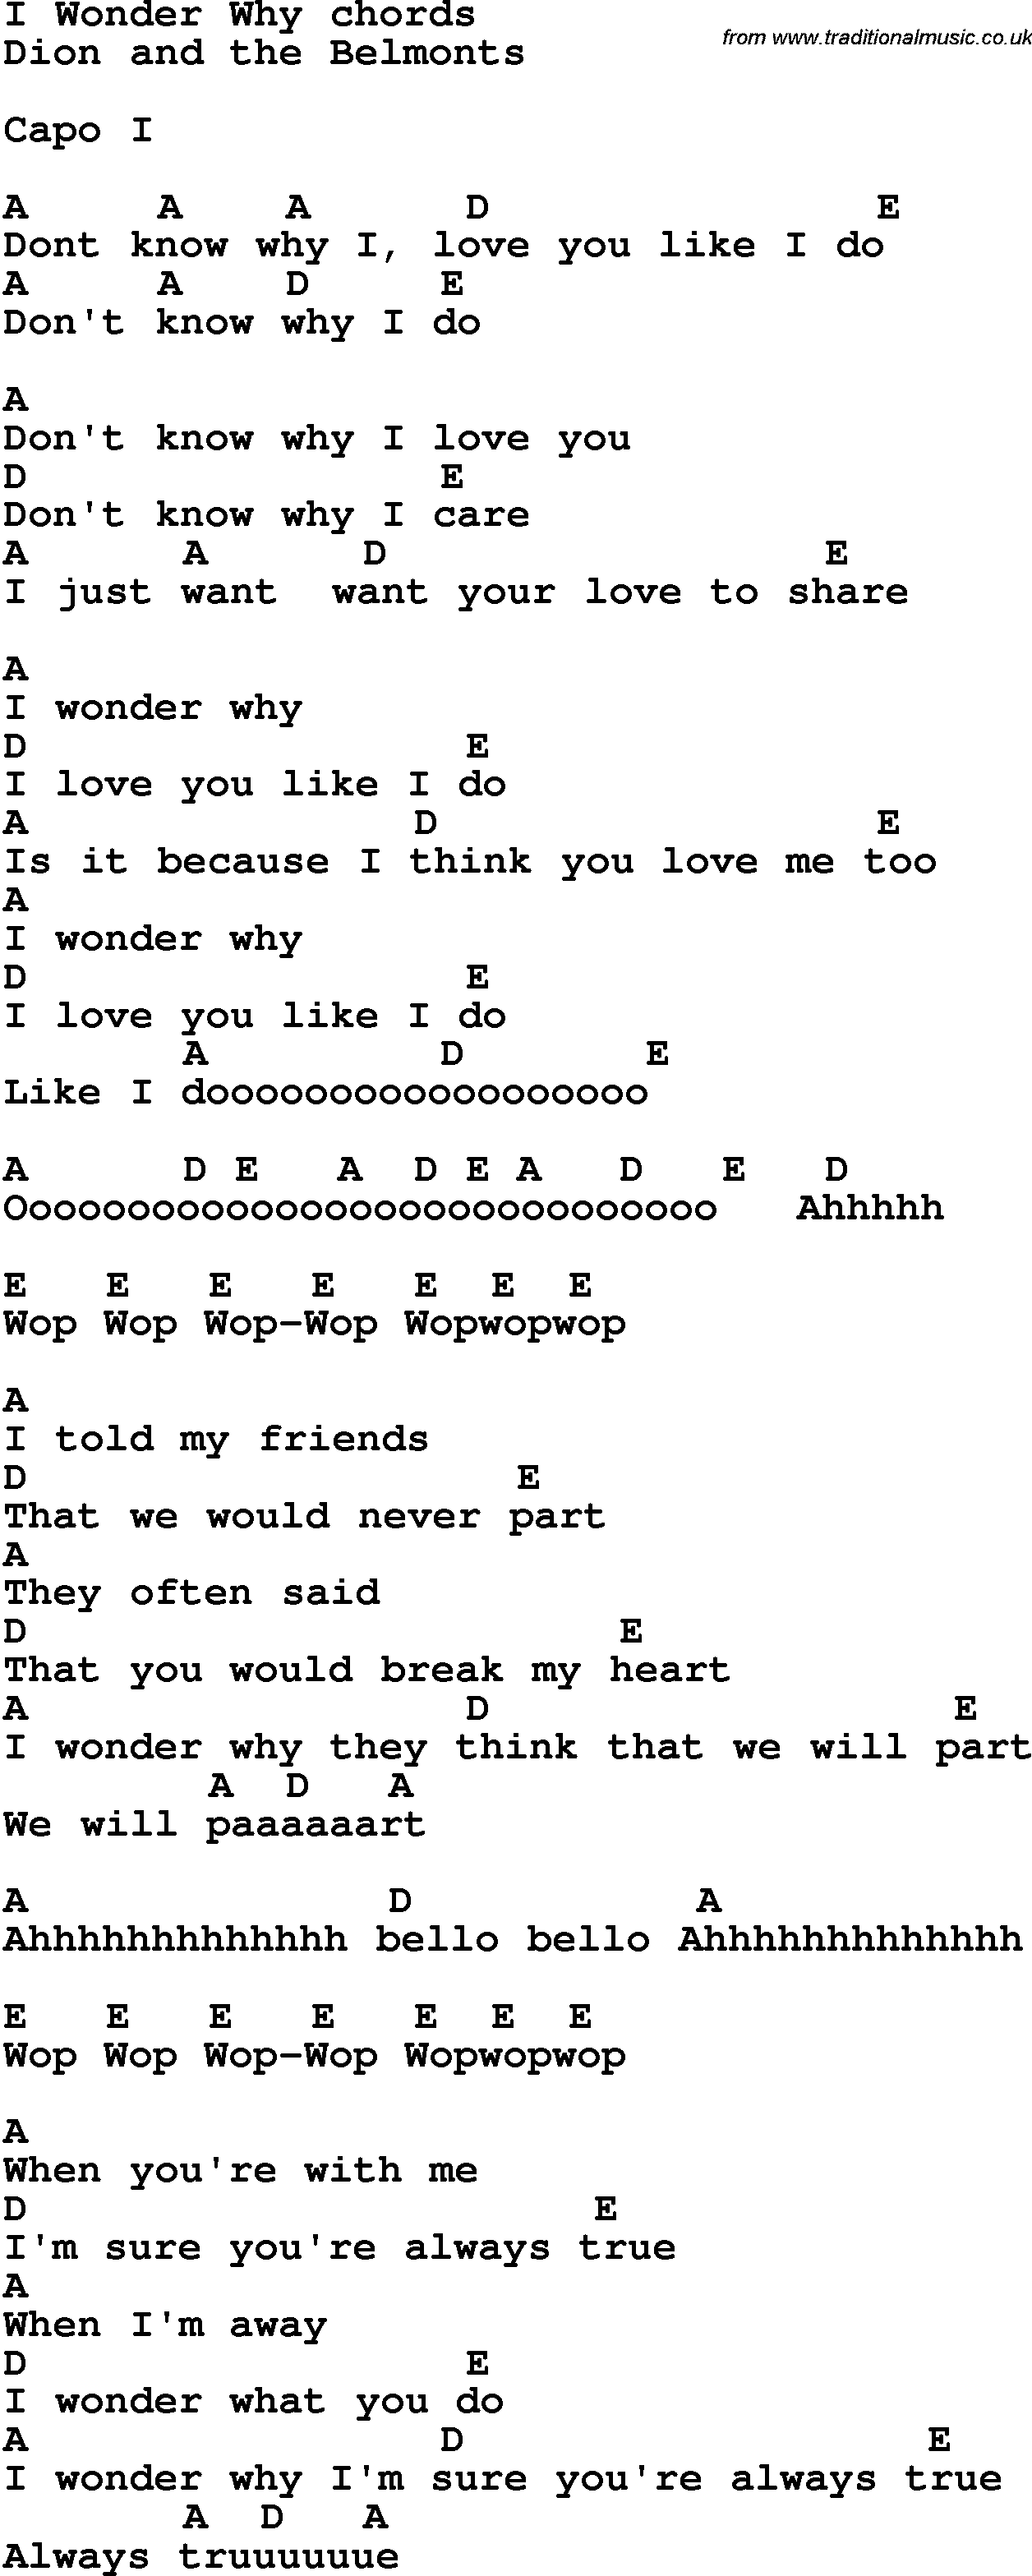 Song Lyrics With Guitar Chords For I Wonder Why